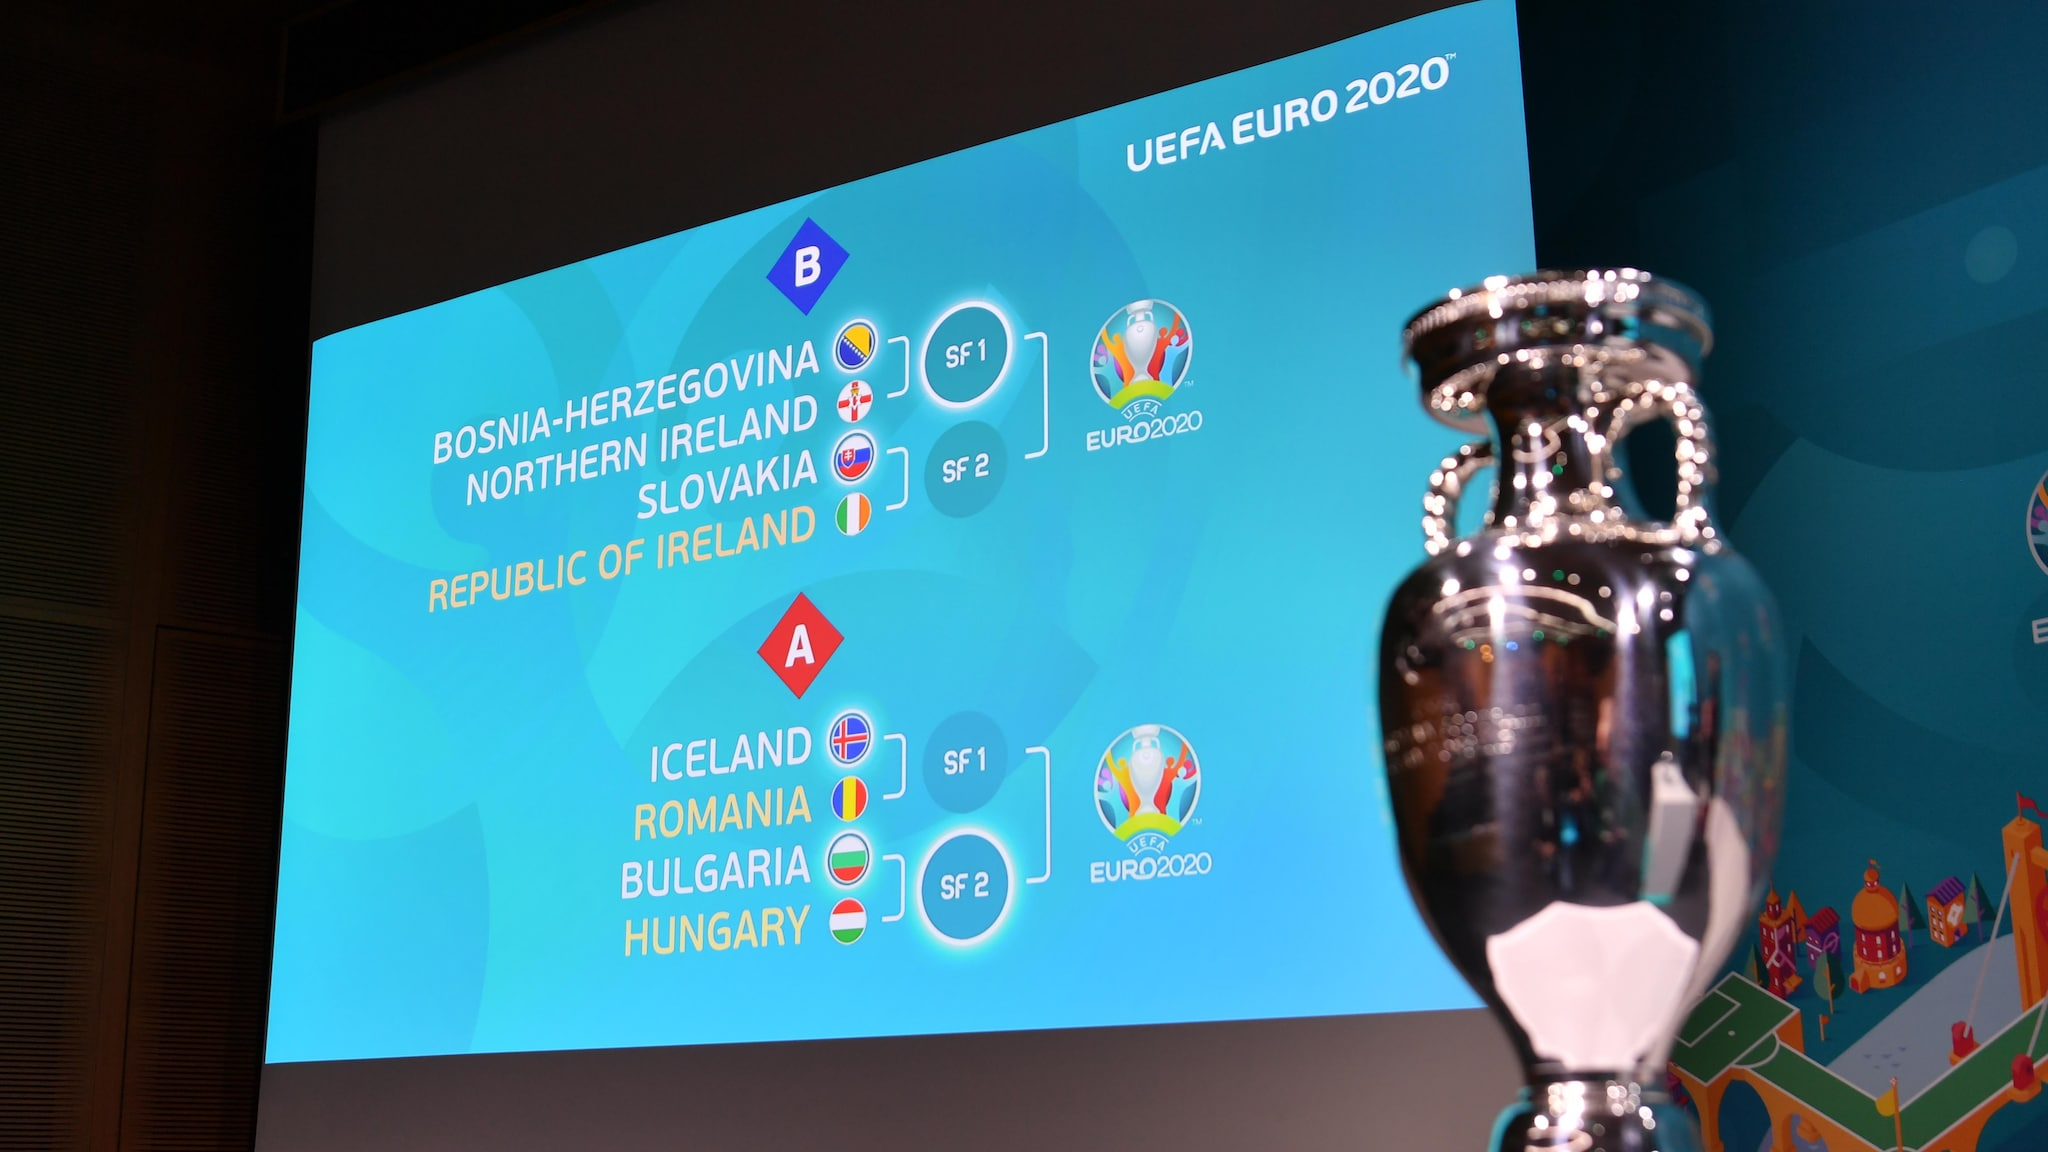 World Cup Draw 2020 Time.Uefa Euro 2020 Play Offs All You Need To Know European